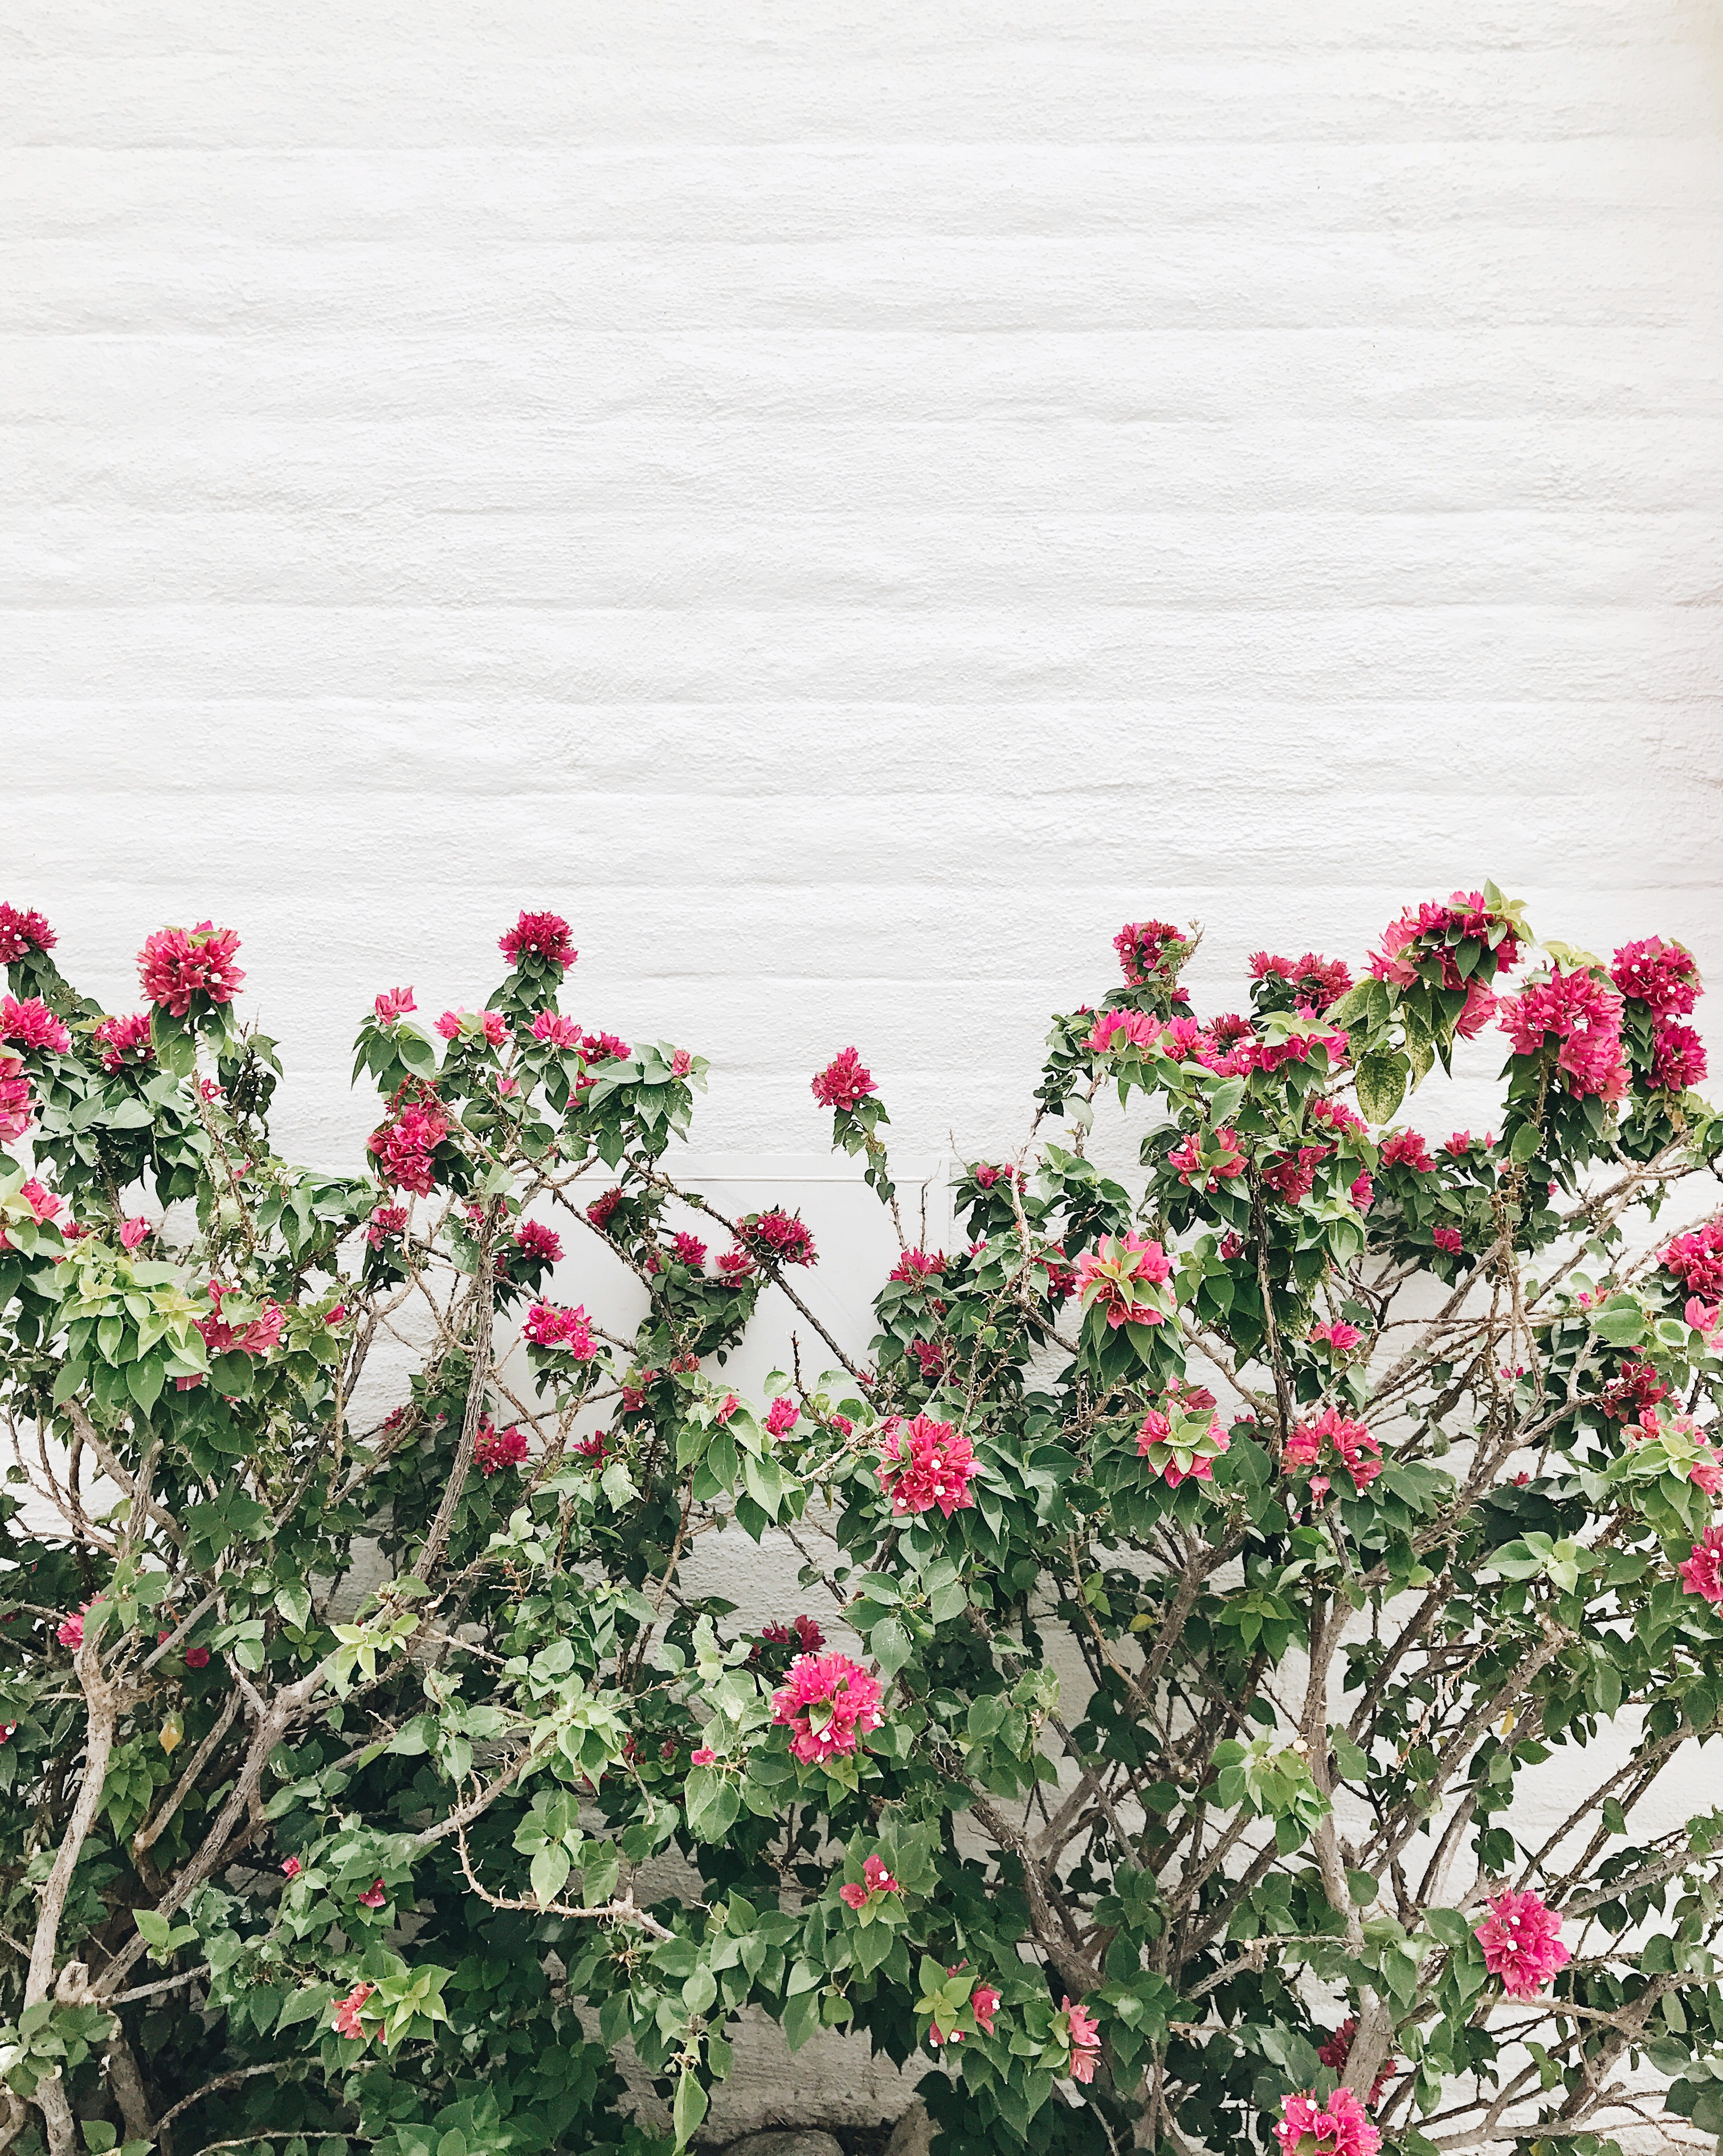 jojotastic travel guide and visual diary for palm springs. bougainvillea